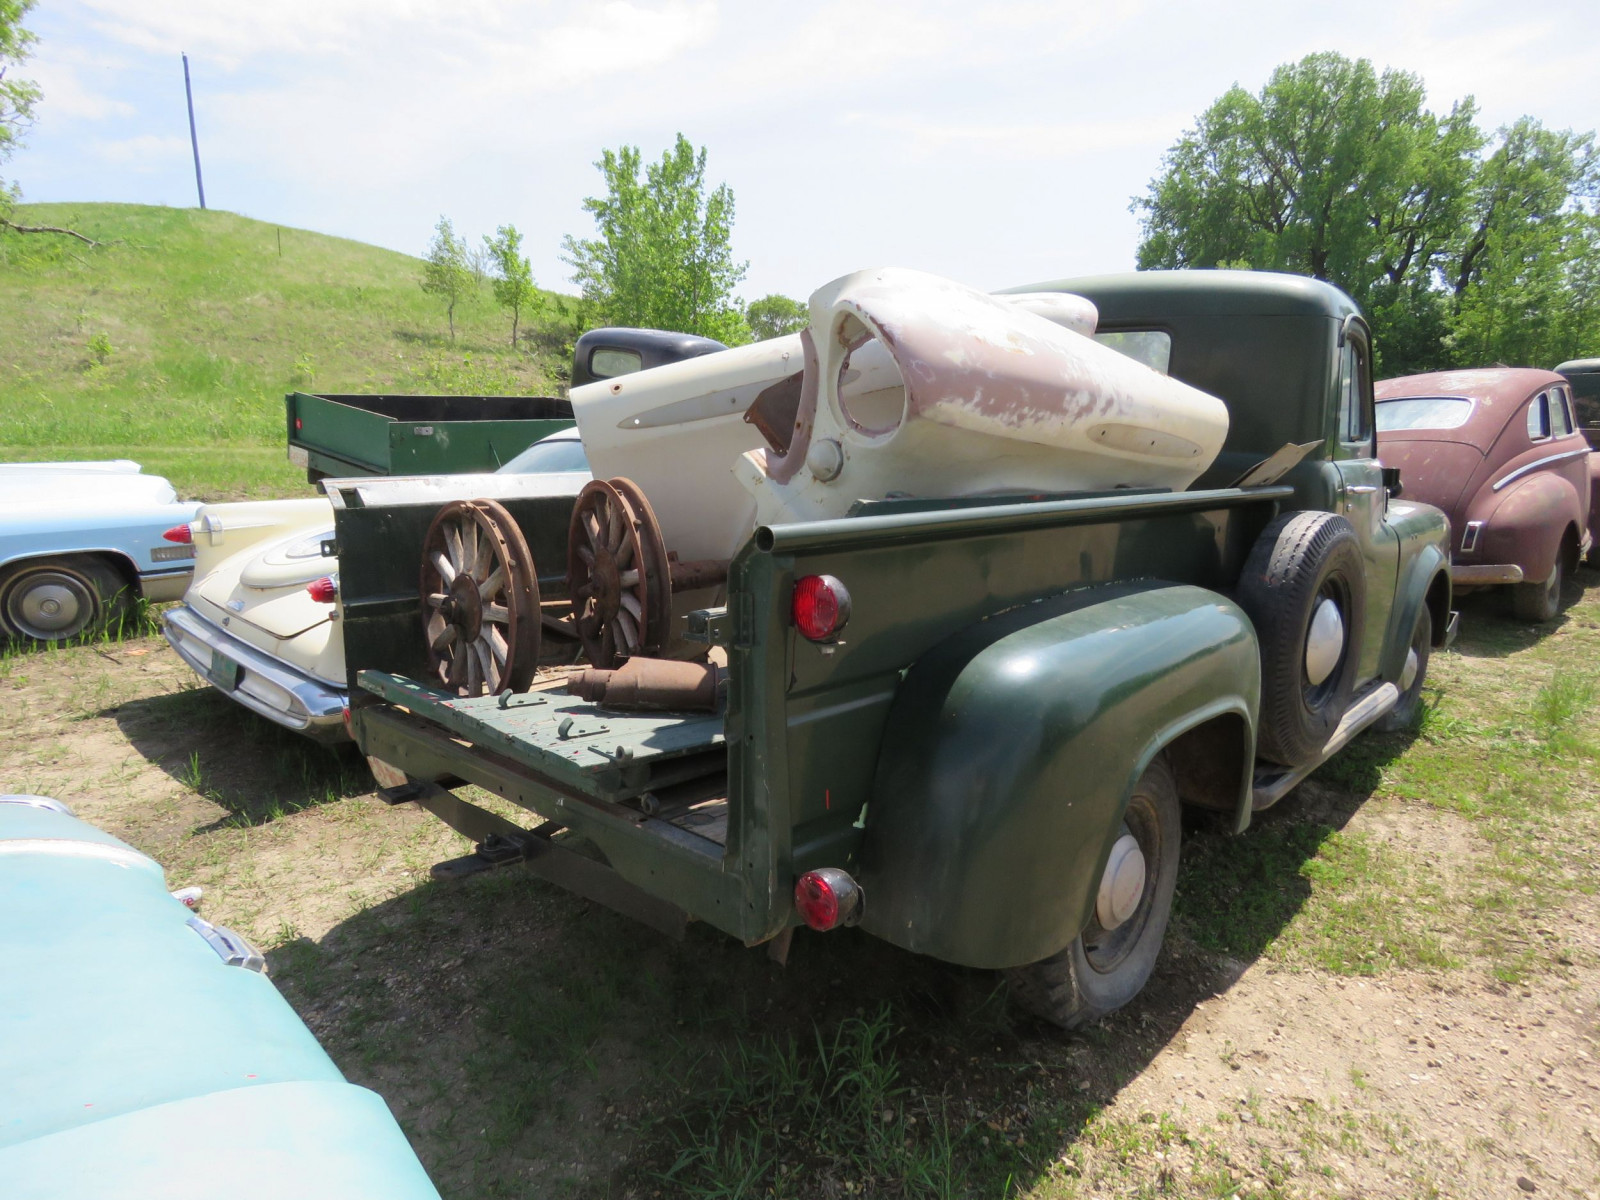 1953 Dodge Job Rated Pickup 83395544 - Image 3